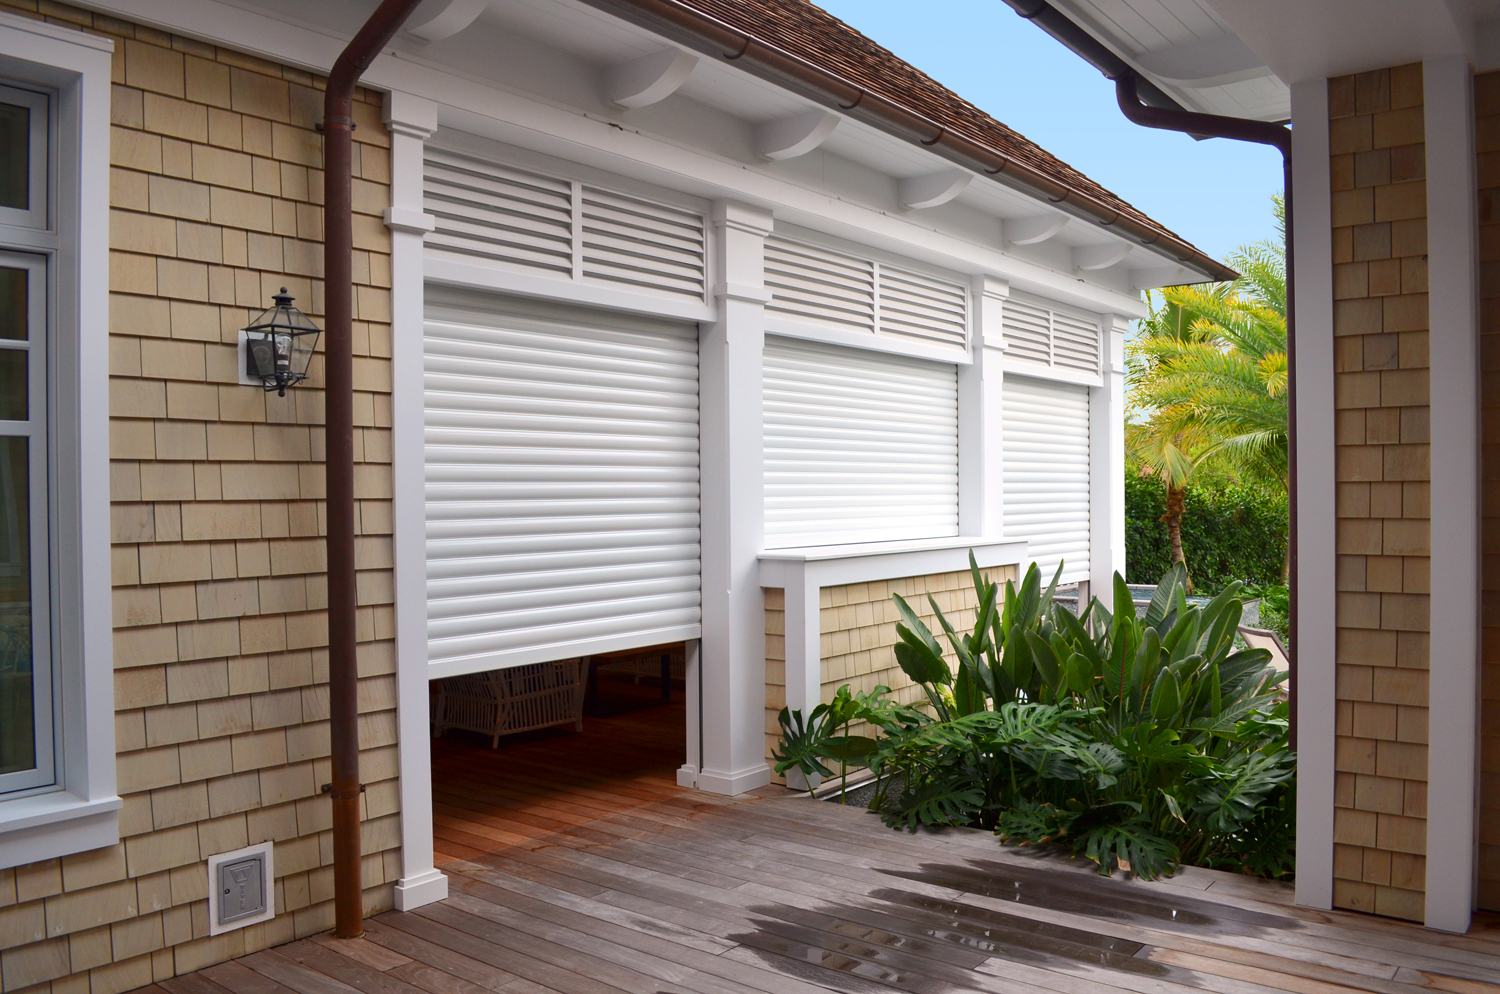 storm_roll_shutters_built-in_05.jpg